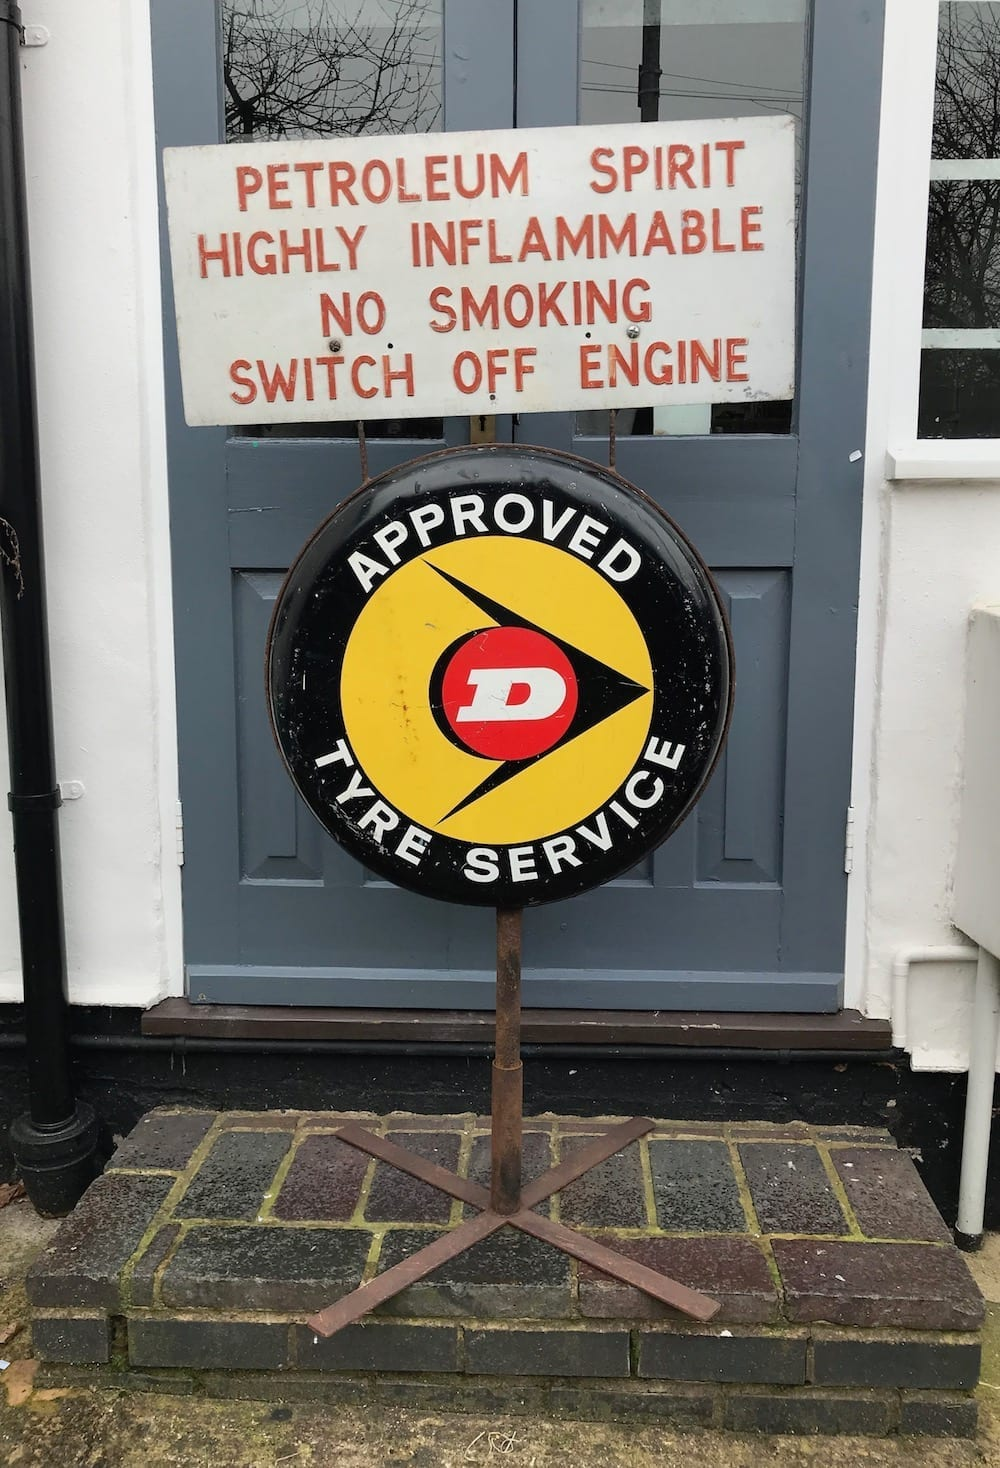 ORIGINAL DUNLOP TYRE SERVICE METAL FORECOURT BUTTON SIGN./RESERVED. - Vintage Motoring UK